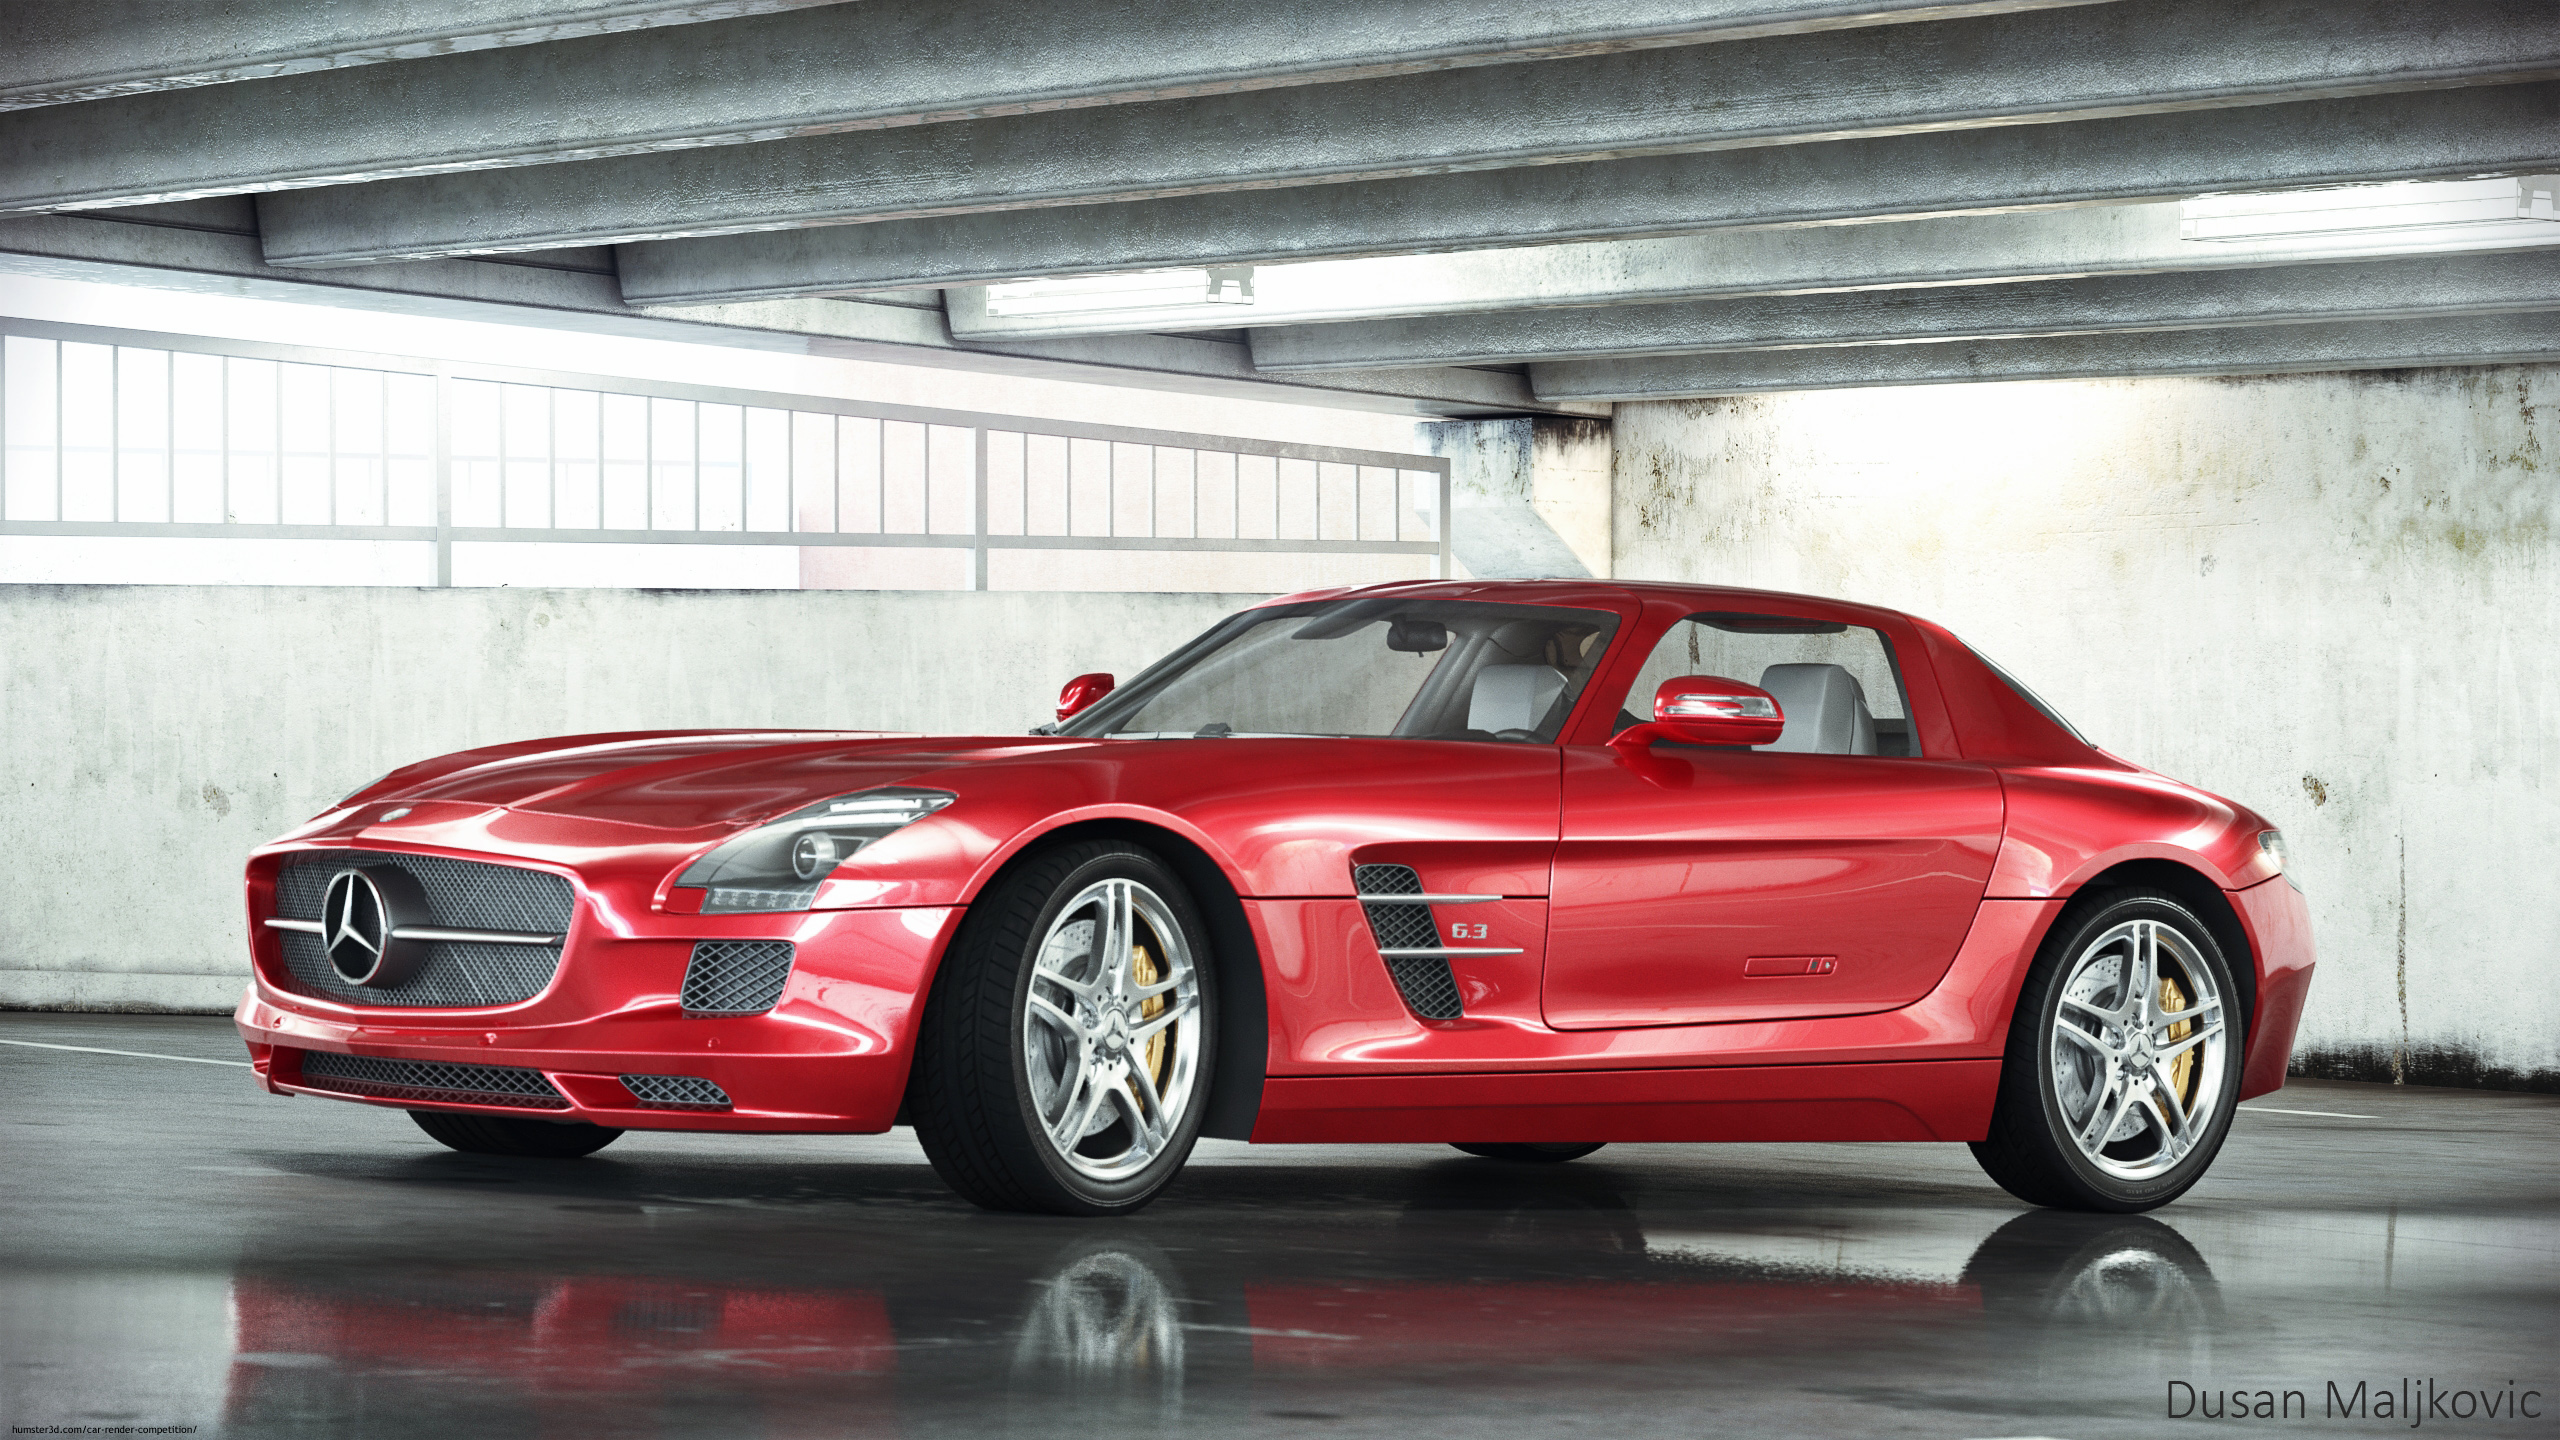 Mercedes-Benz SLS AMG 3d art